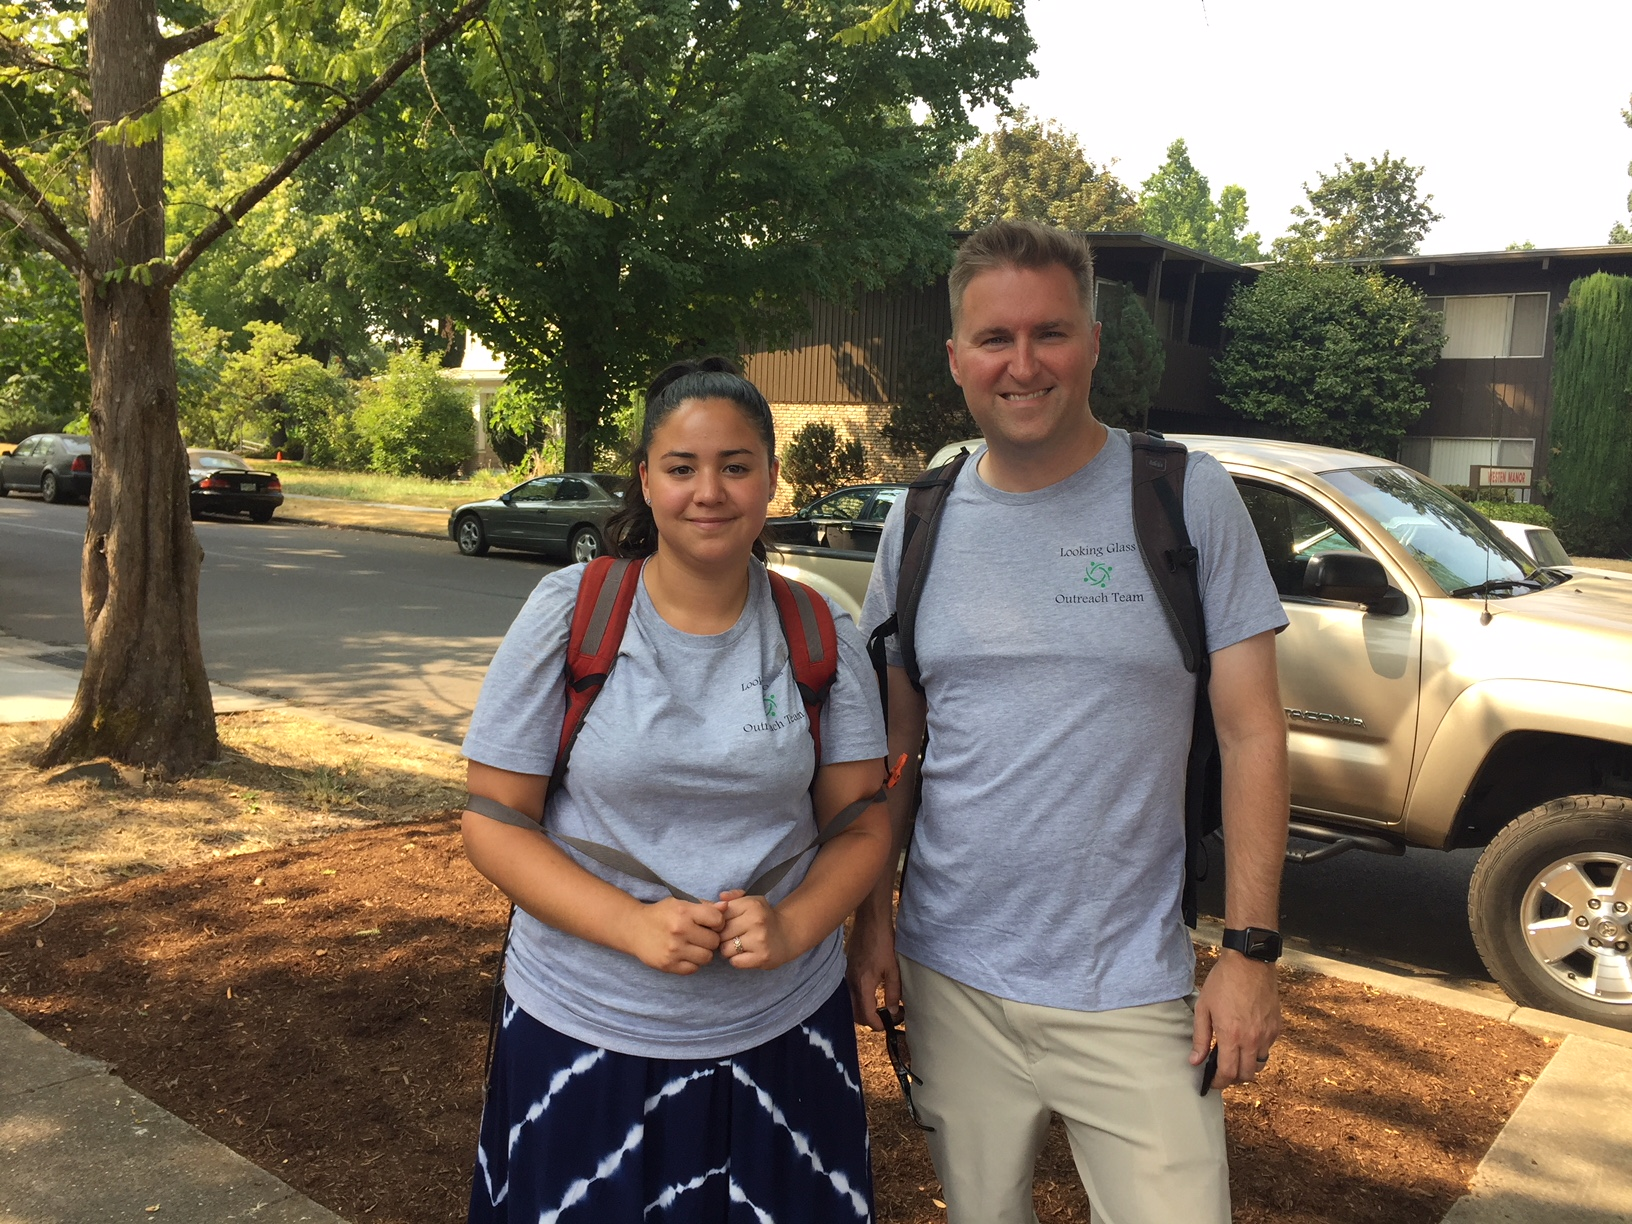 Street Outreach Worker, Rose Reyes (left), and Marketing & Development Director, Tyler Mack (right), on a recent outing providing water, snacks, socks and other resources to street youth in Eugene.